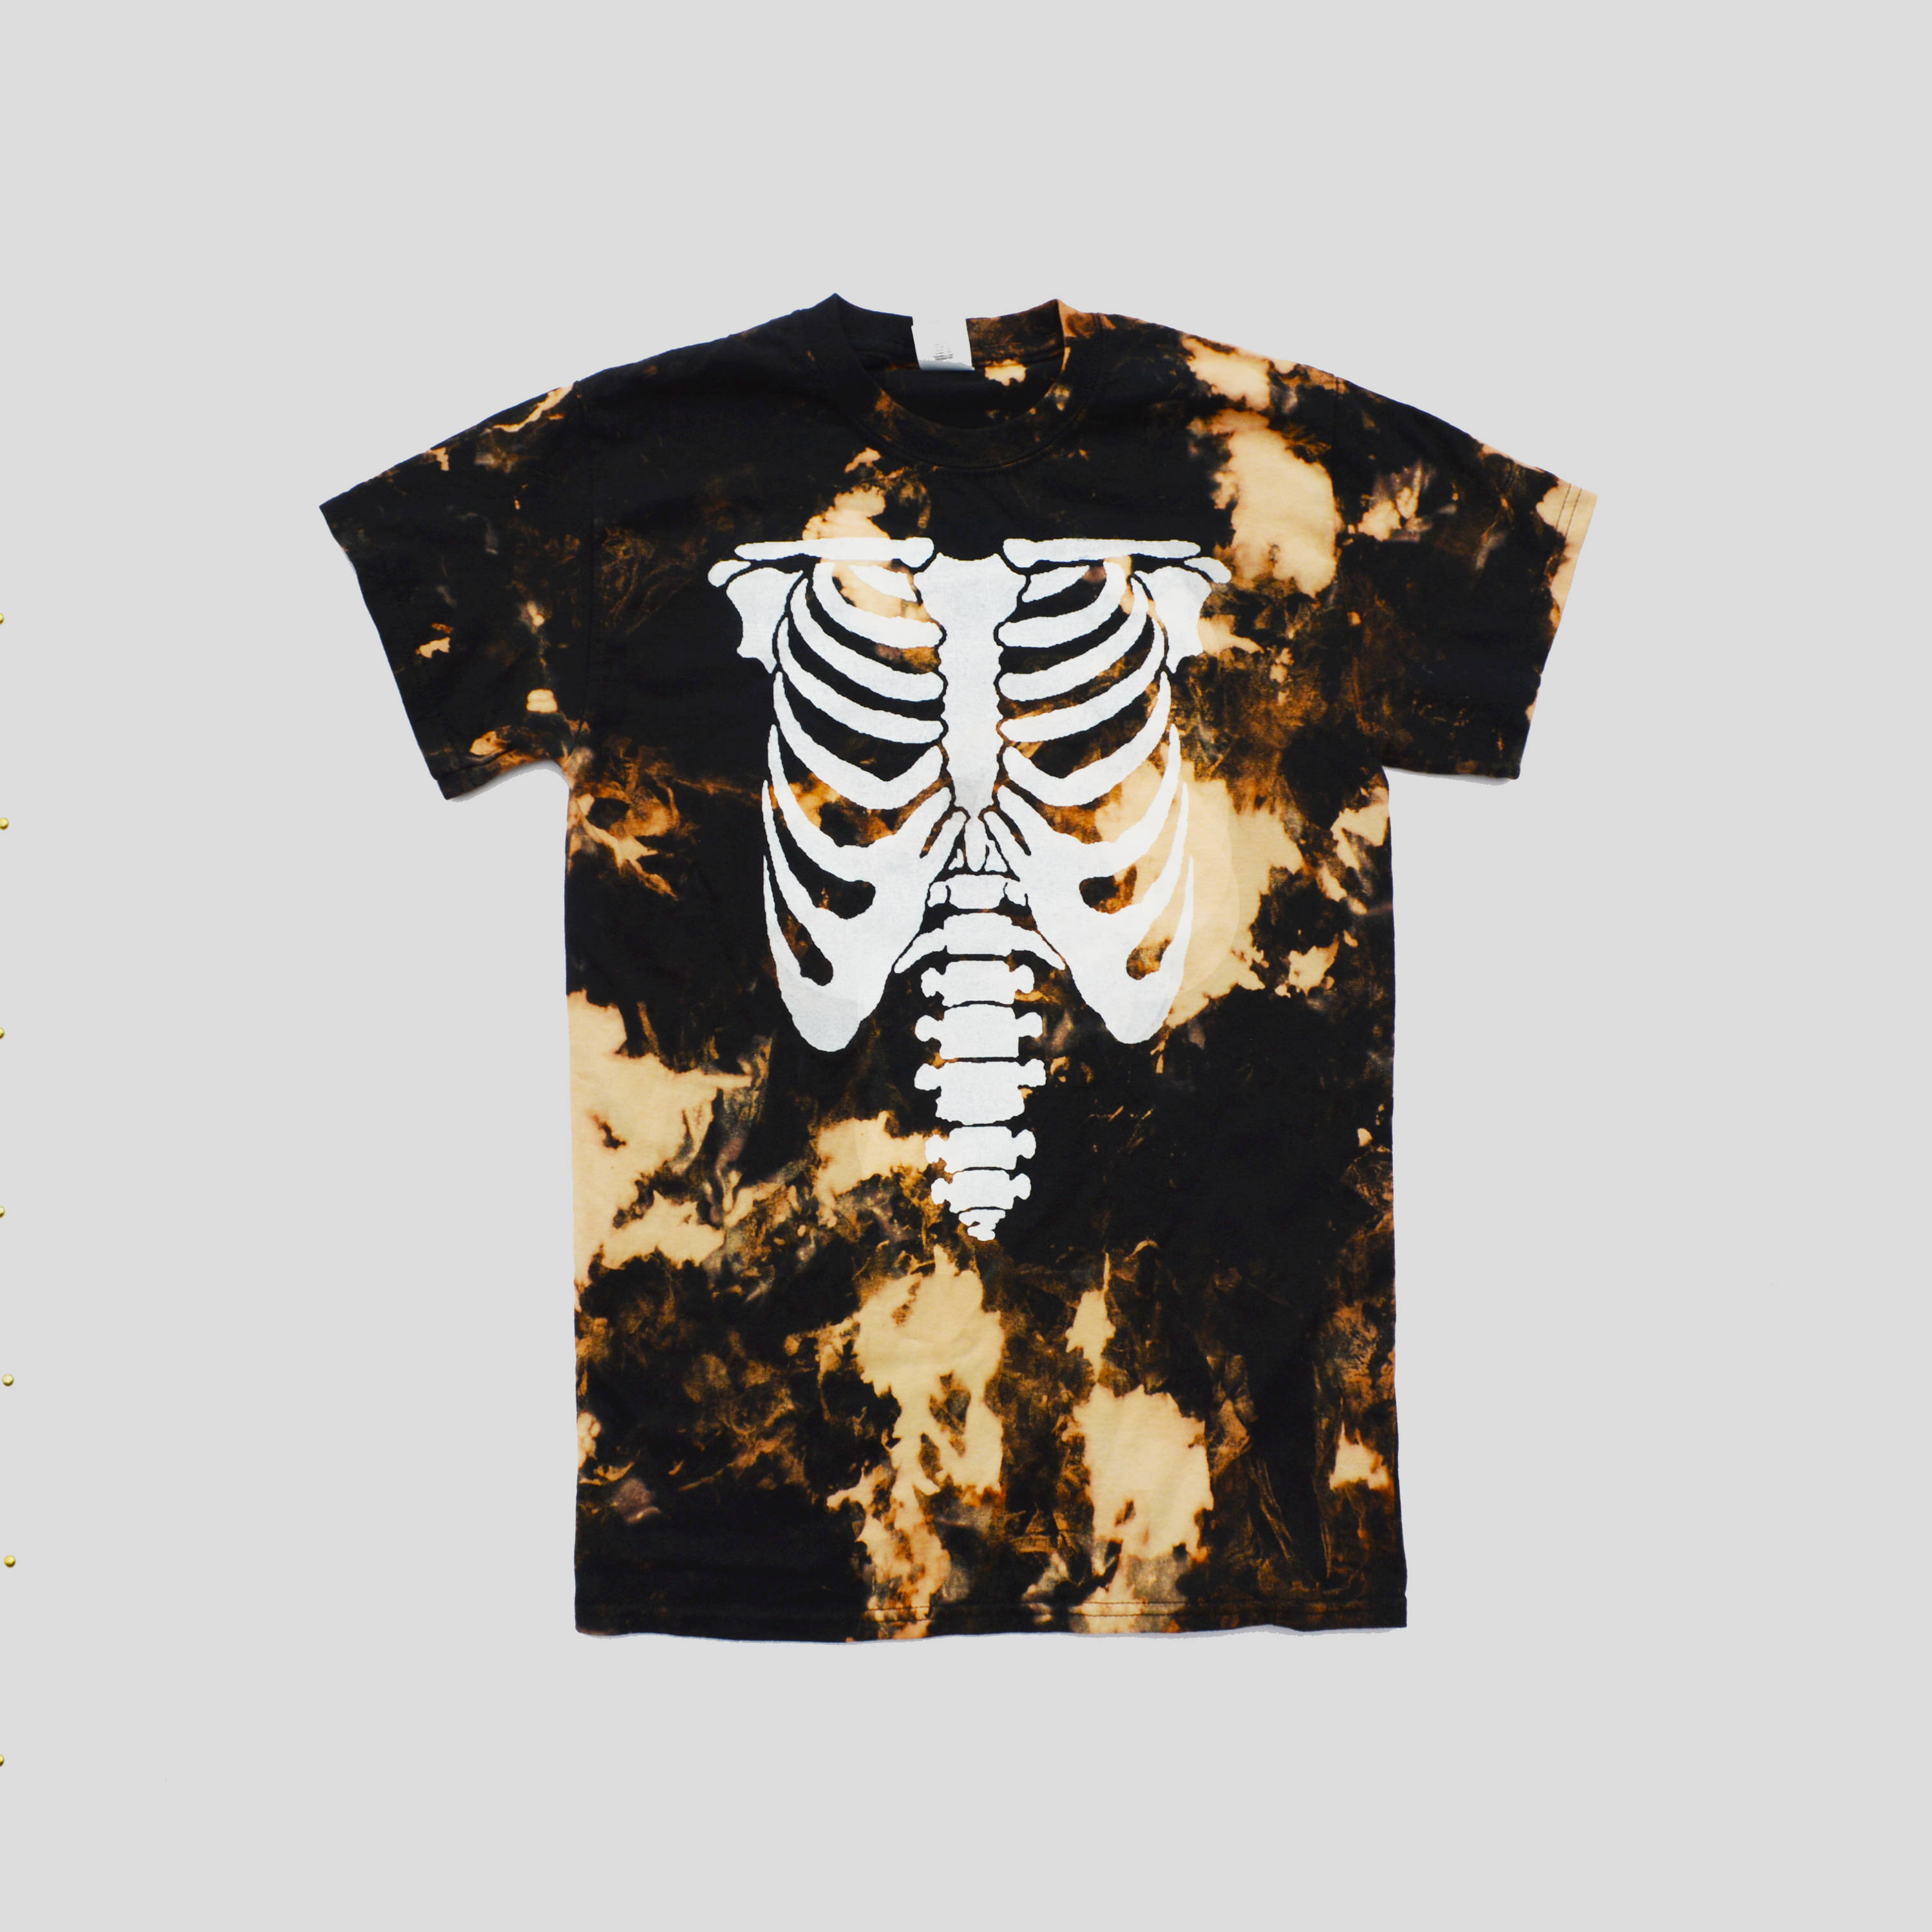 Acid Burned Gothic Skeleton Rib Cage Black Tshirt Alternative Goth Hipster Gothic Clothing Indie Satanic Hype Swag Men Women